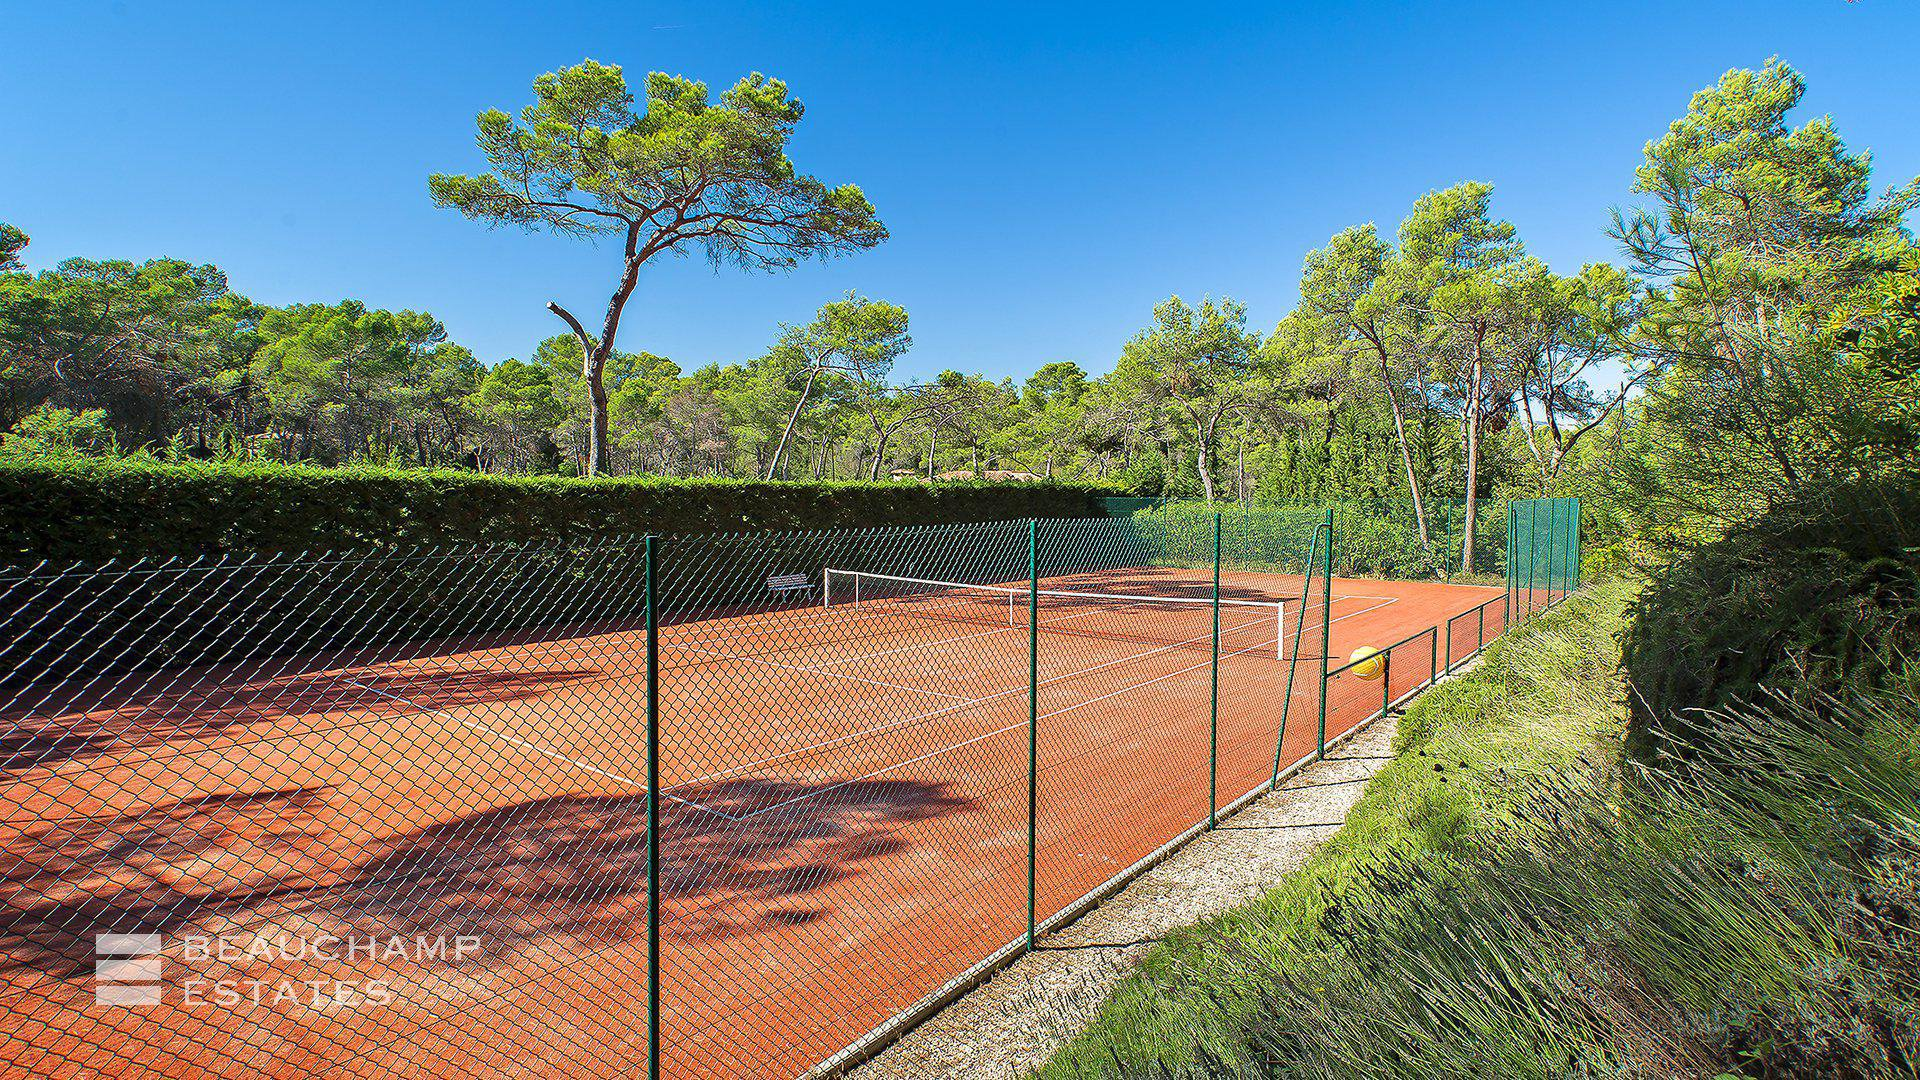 Mougins - Superb Provençal Mas with 6 bedrooms and private Tennis